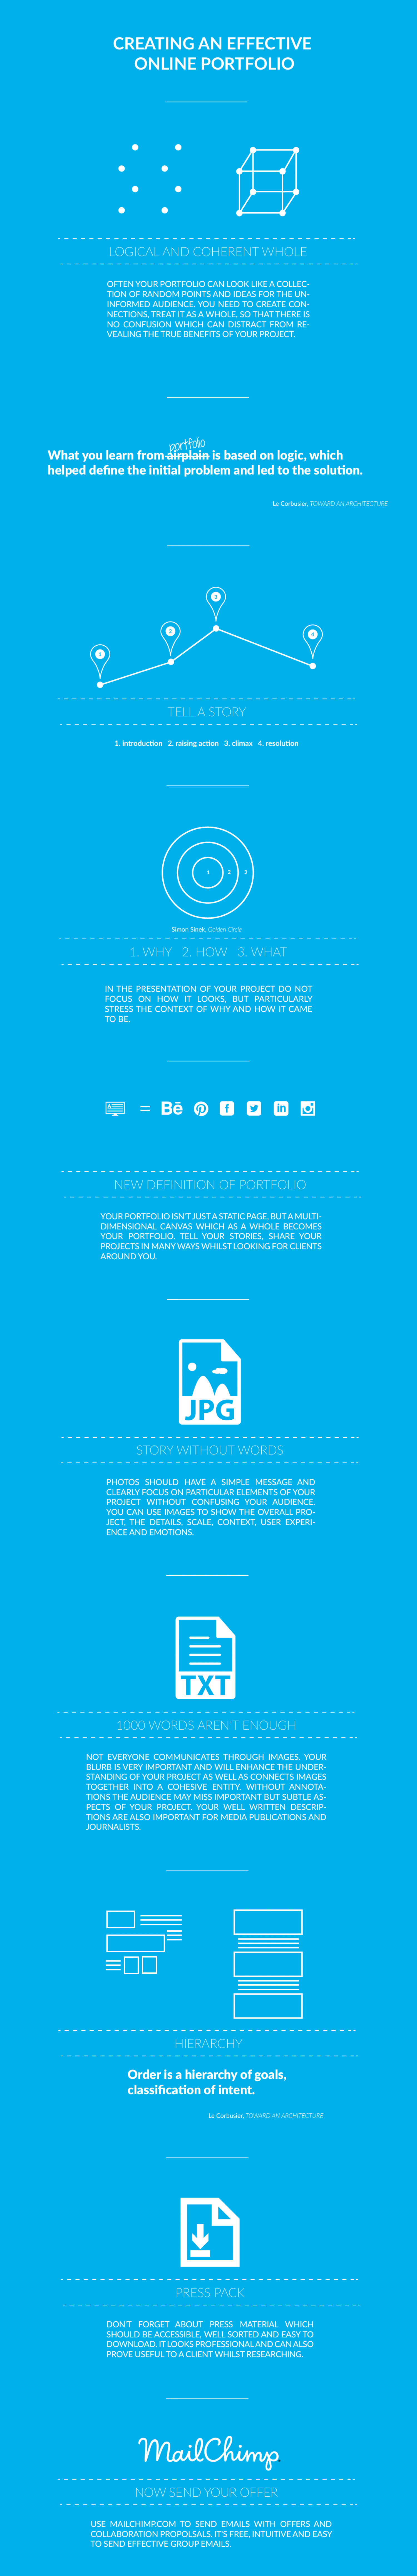 Creating an Effective Online Portfolio Infographic